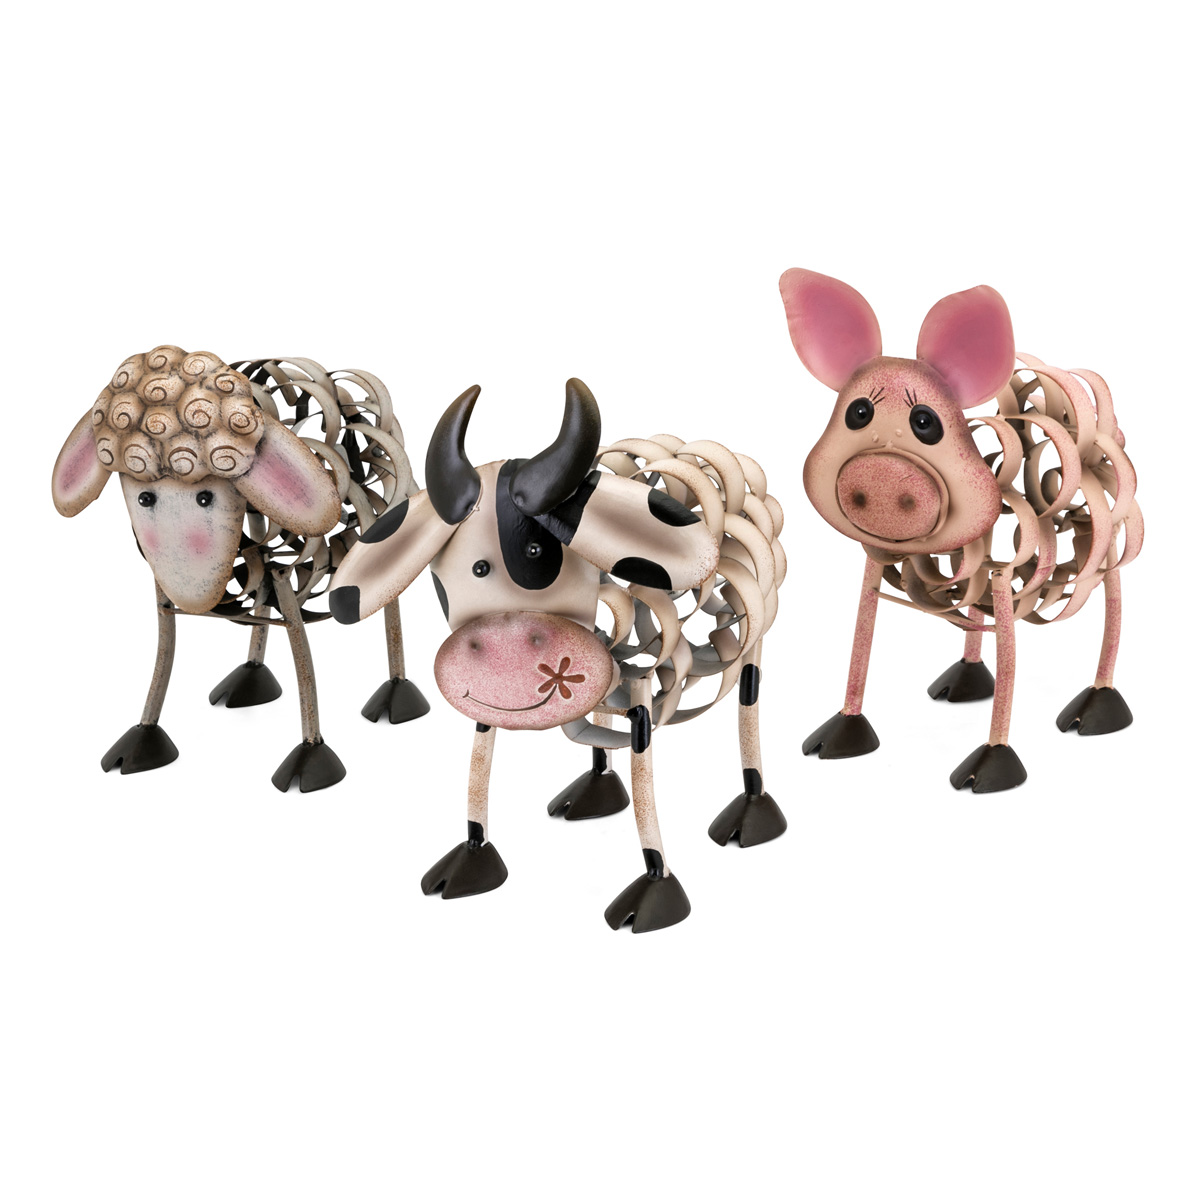 Farm Friends Statues - Set of 3